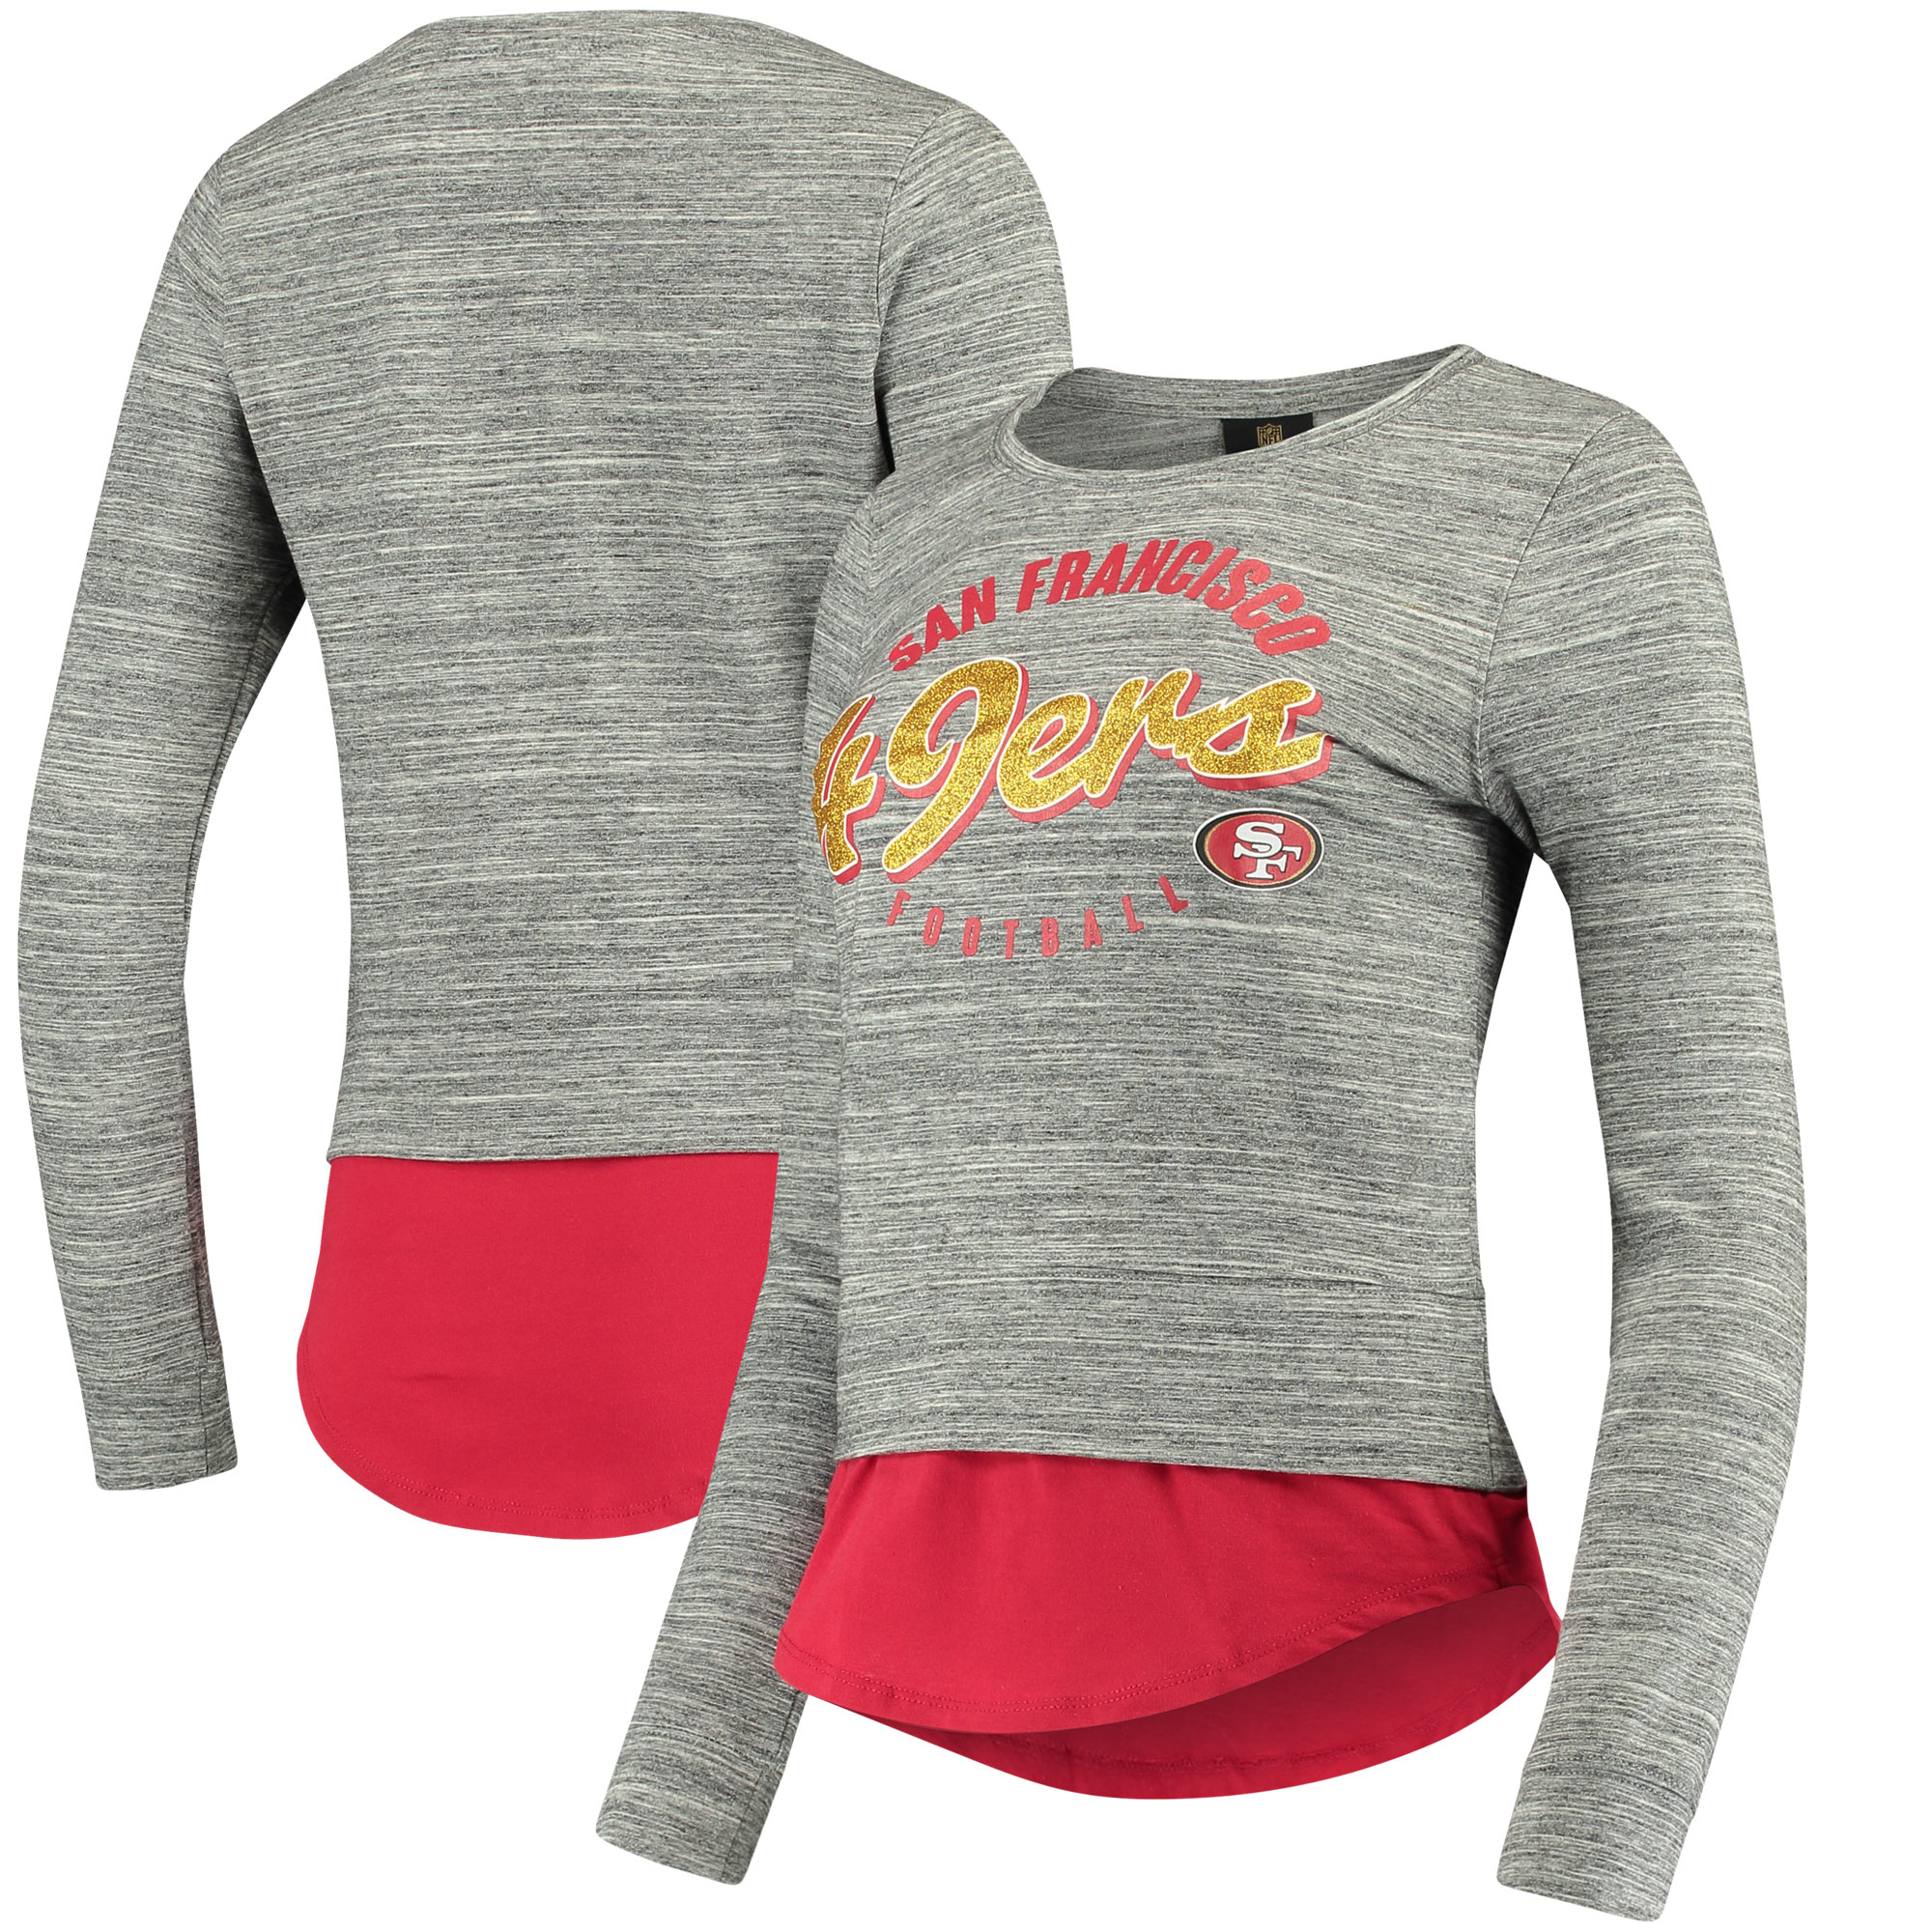 San Francisco 49ers Women's Juniors Shirt Tail Layered Long Sleeve T-Shirt - Heathered Gray/Scarlet